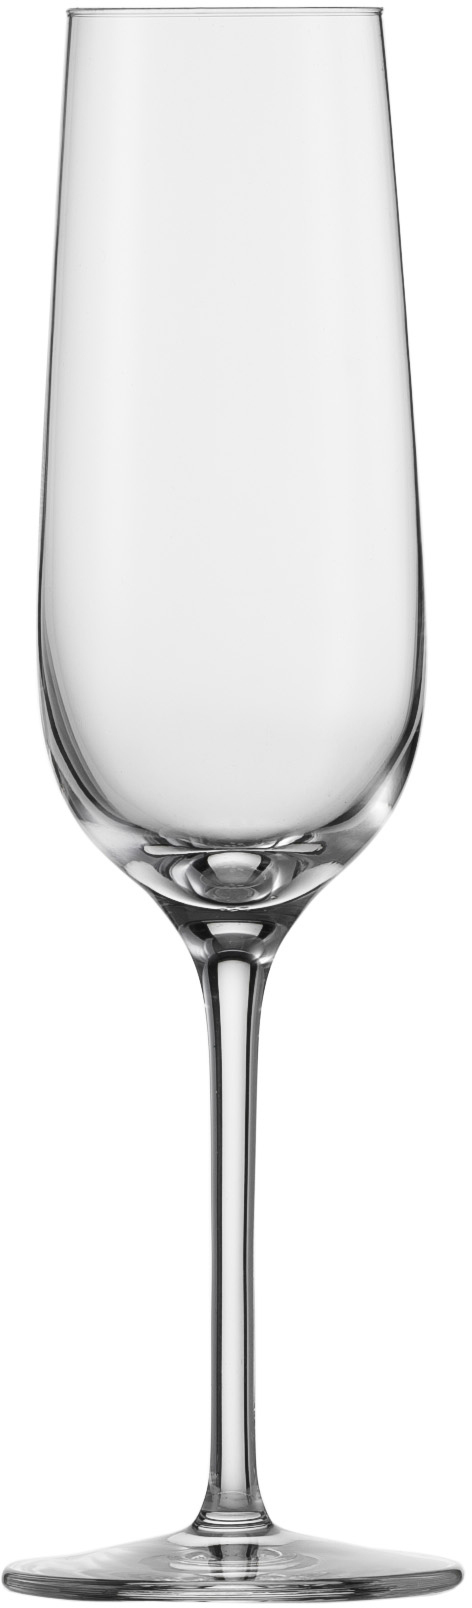 Vinezza SP Champagne Glass (Set of 2)